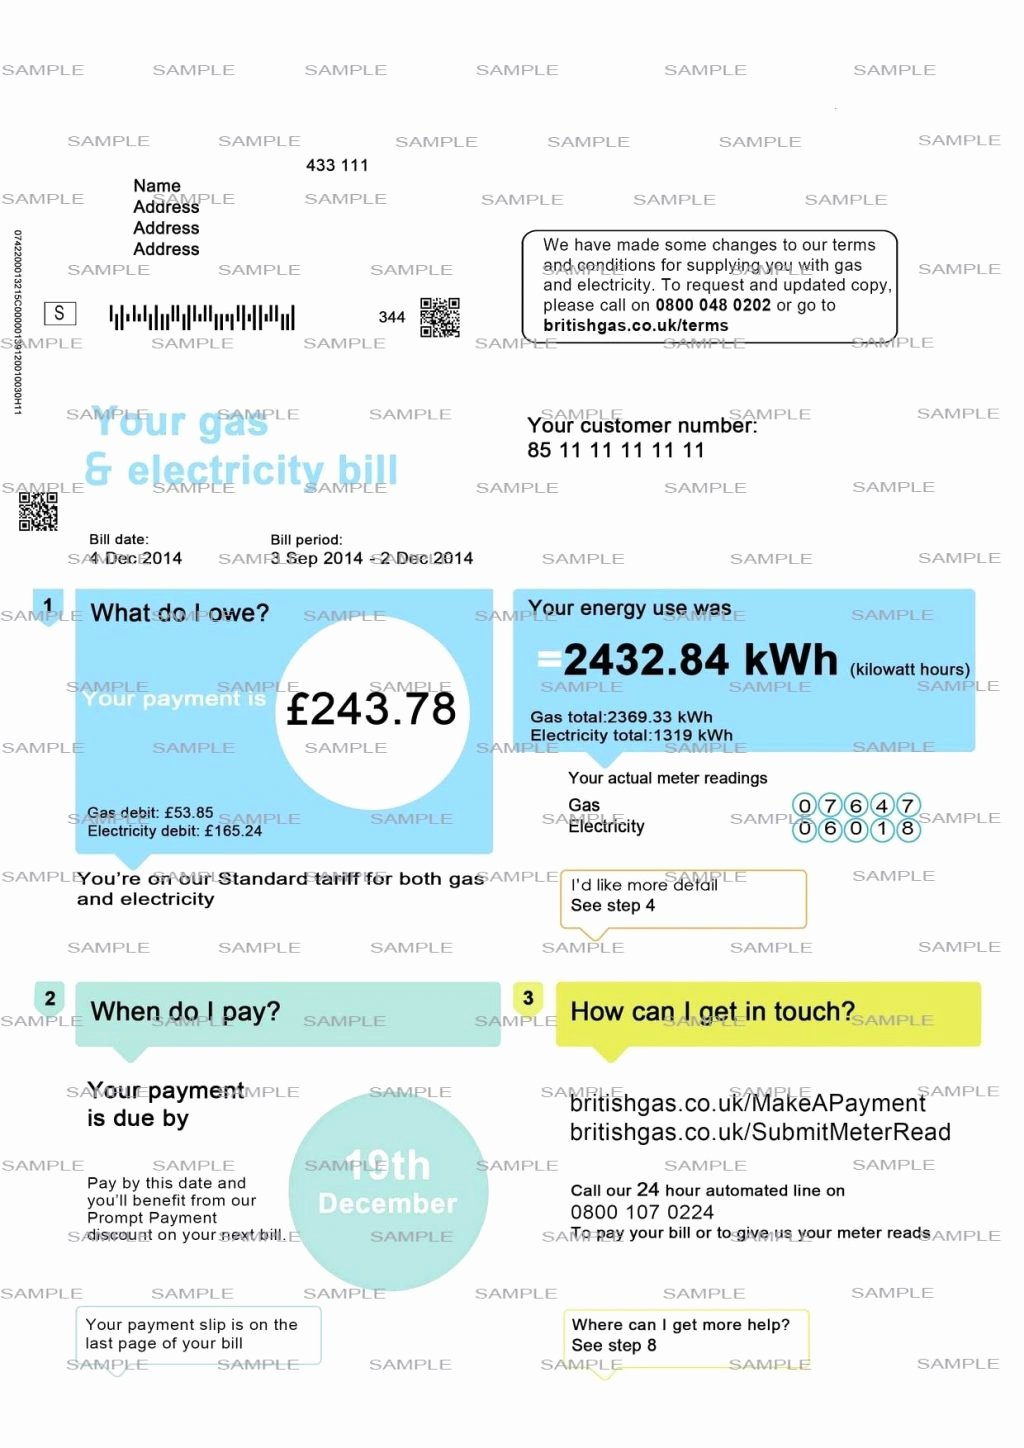 Fake Utility Bill Template Inspirational Utility Bill Template Blank Uk British Gasdf Fake Free